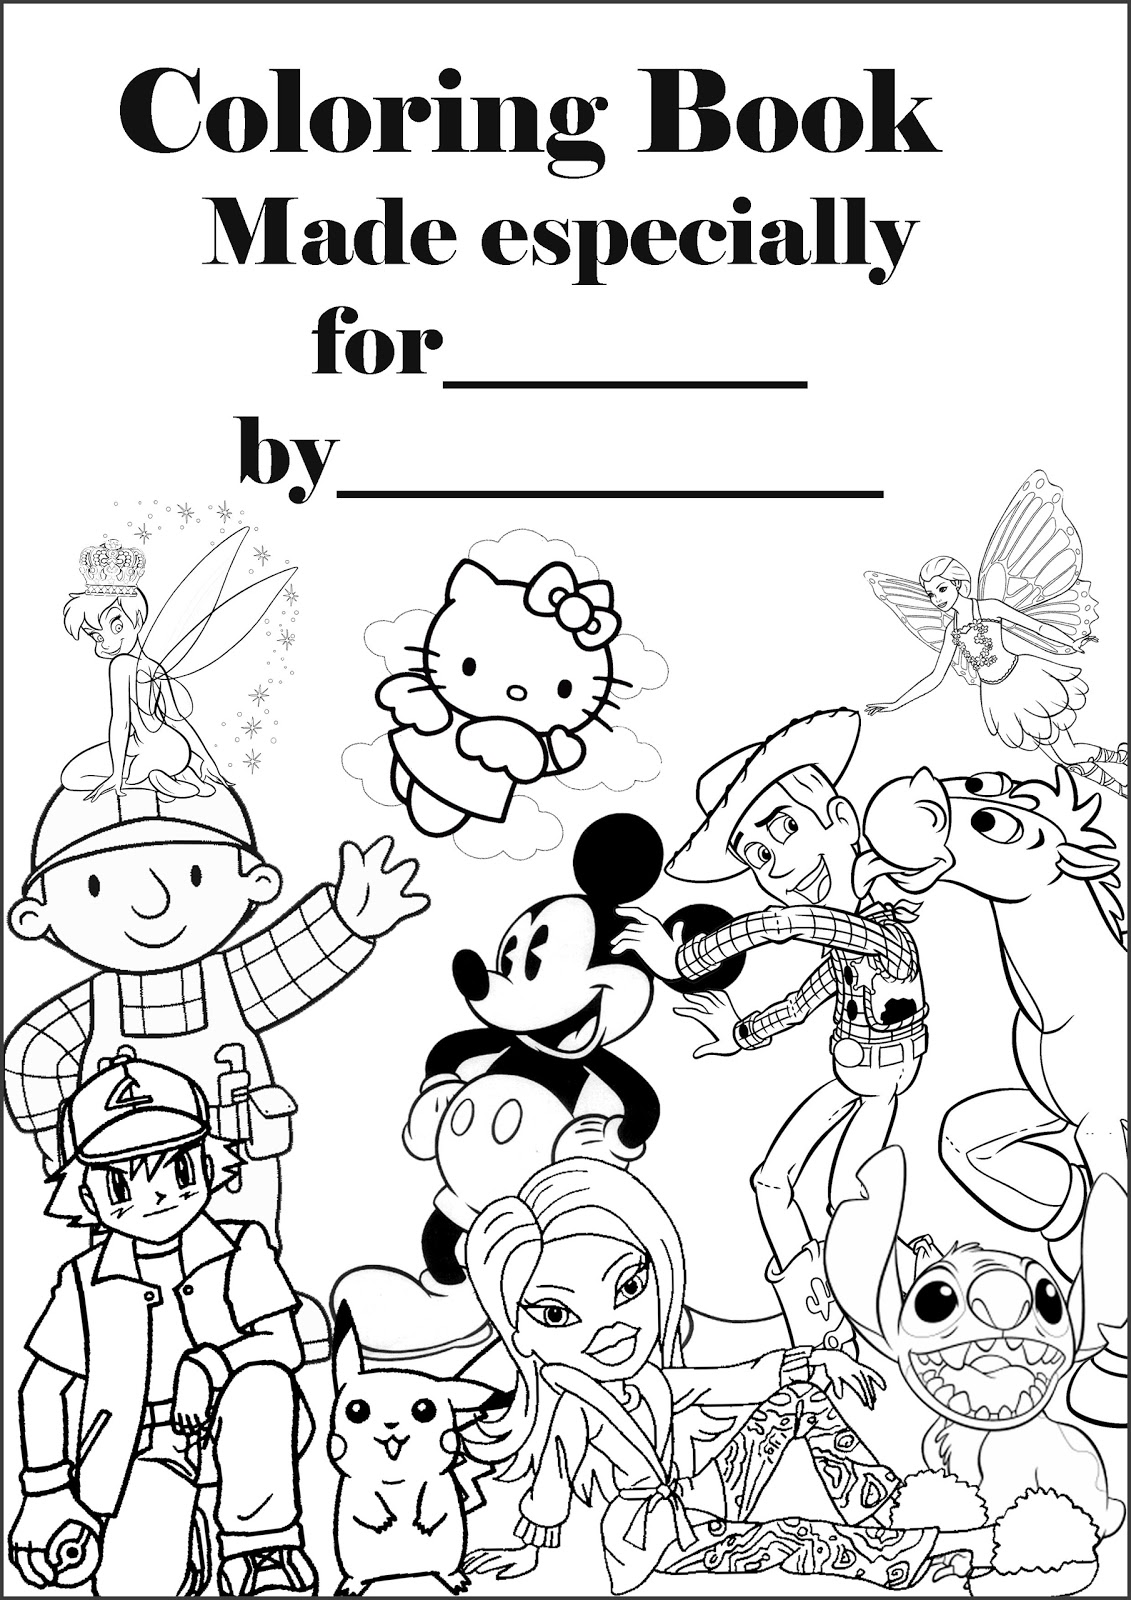 BARBIE COLORING PAGES: PERSONALISED COLORING BOOK COVER